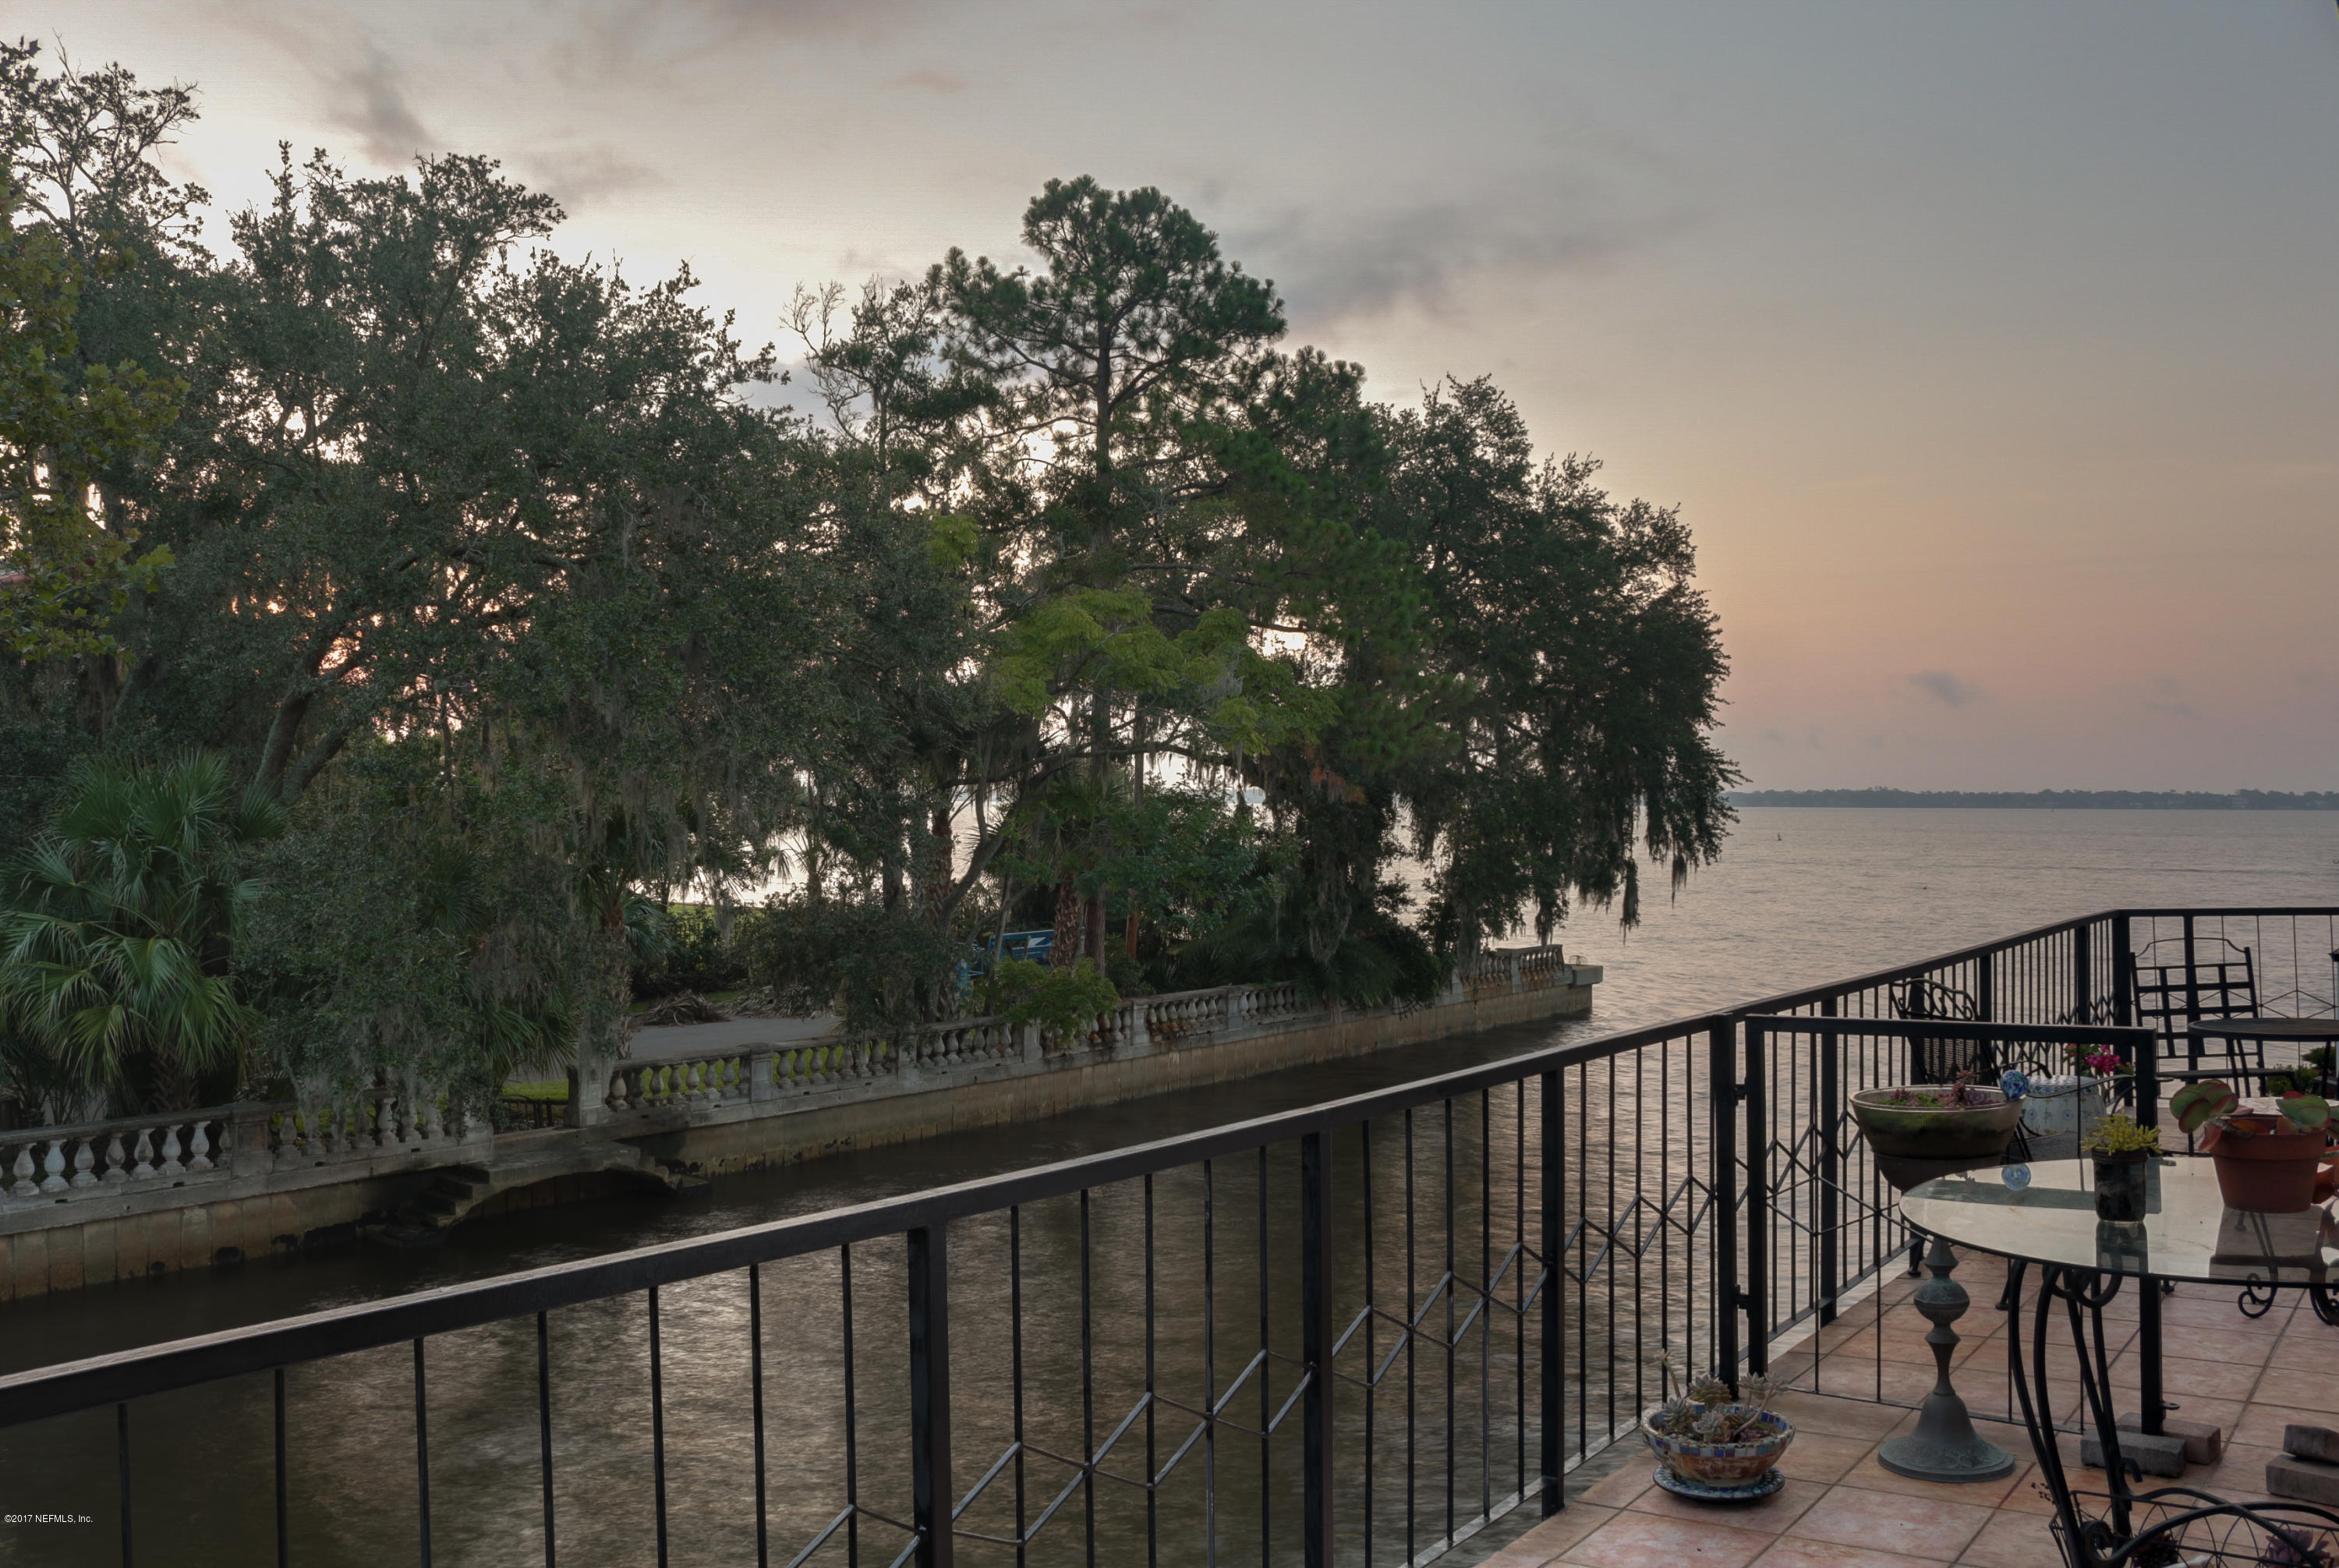 2950 ST JOHNS, JACKSONVILLE, FLORIDA 32205, 3 Bedrooms Bedrooms, ,3 BathroomsBathrooms,Residential,For sale,ST JOHNS,1052568